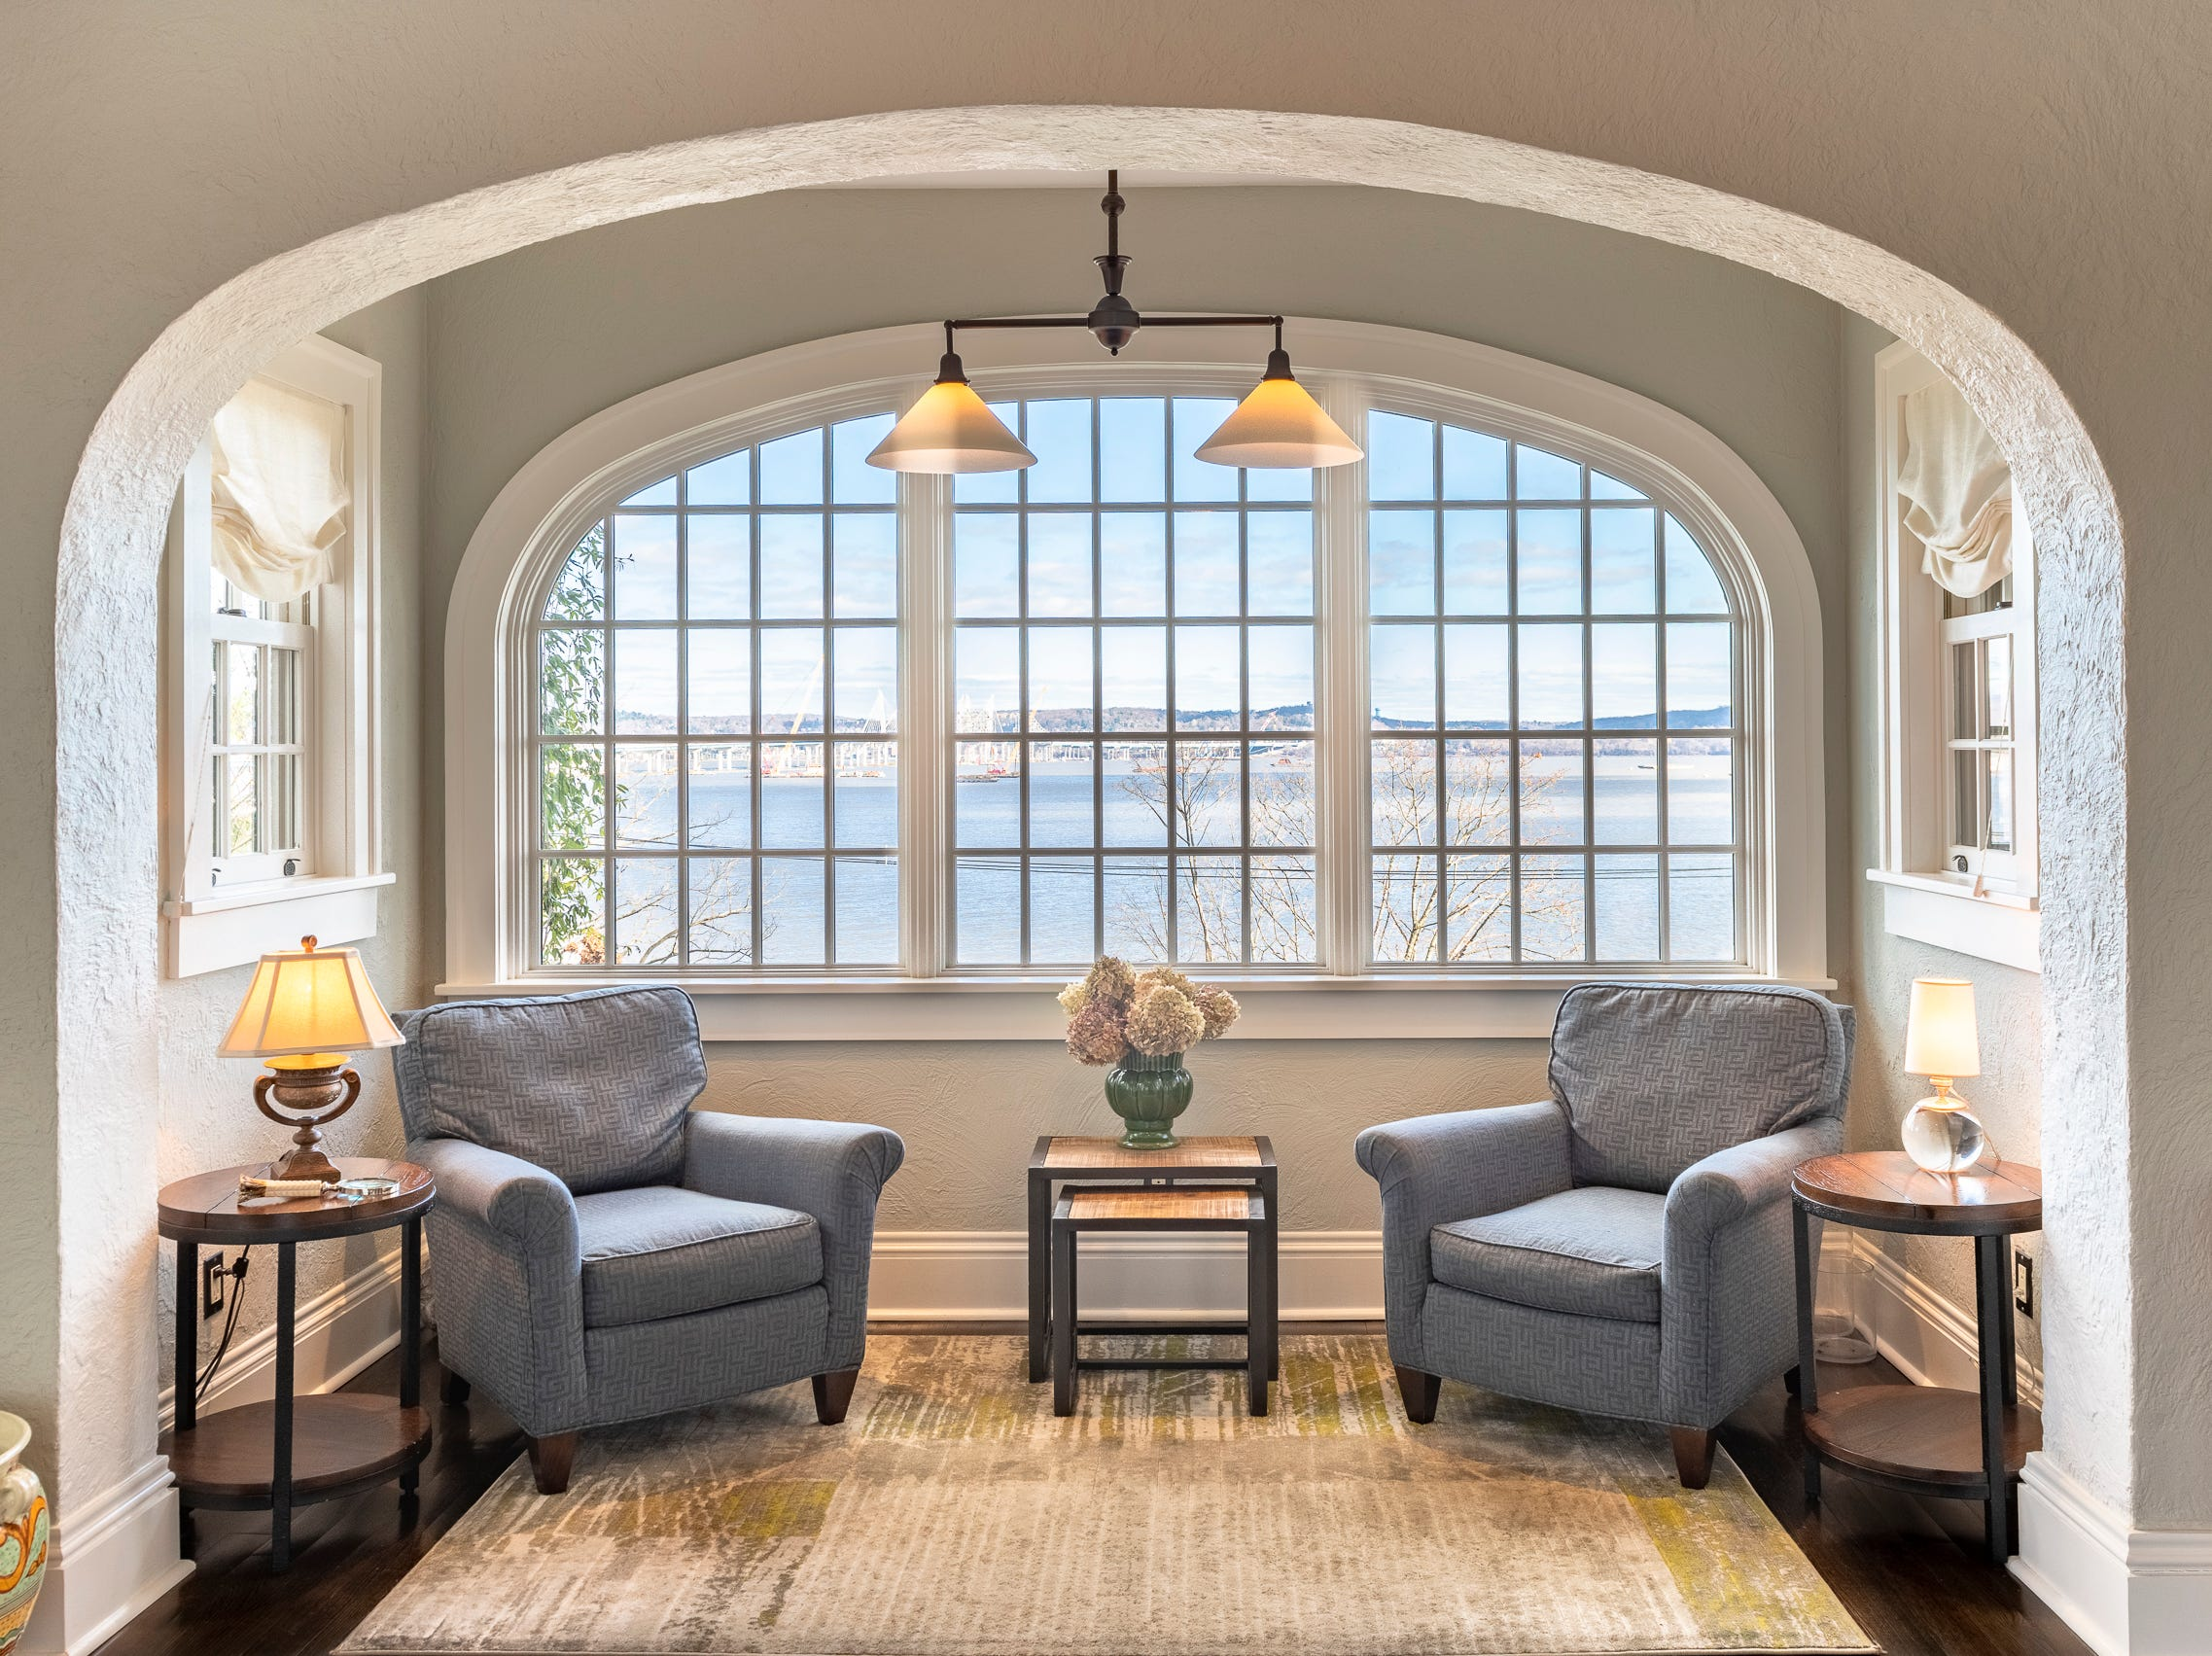 The home boasts four working fireplaces, a beautiful butler's pantry, powder room, large eat-in kitchen with radiant heat, formal dining room, spacious center entry hall, living room and charming sun room with beautiful curved original windows.